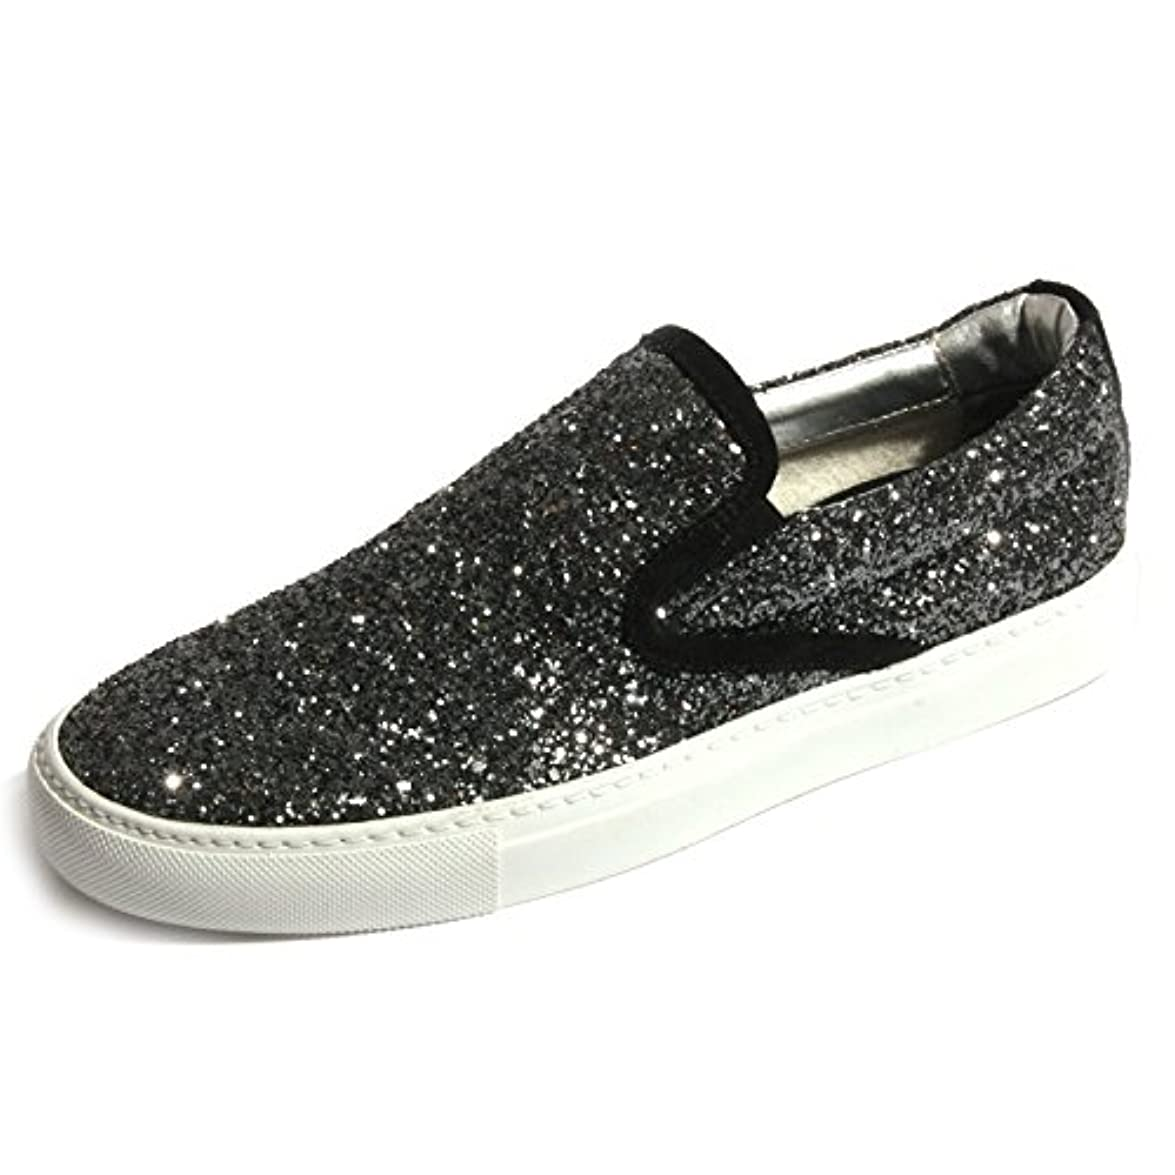 B0417 Sneaker Donna P448 E5 Slipon Scarpa Nera Glitter Shoes Women